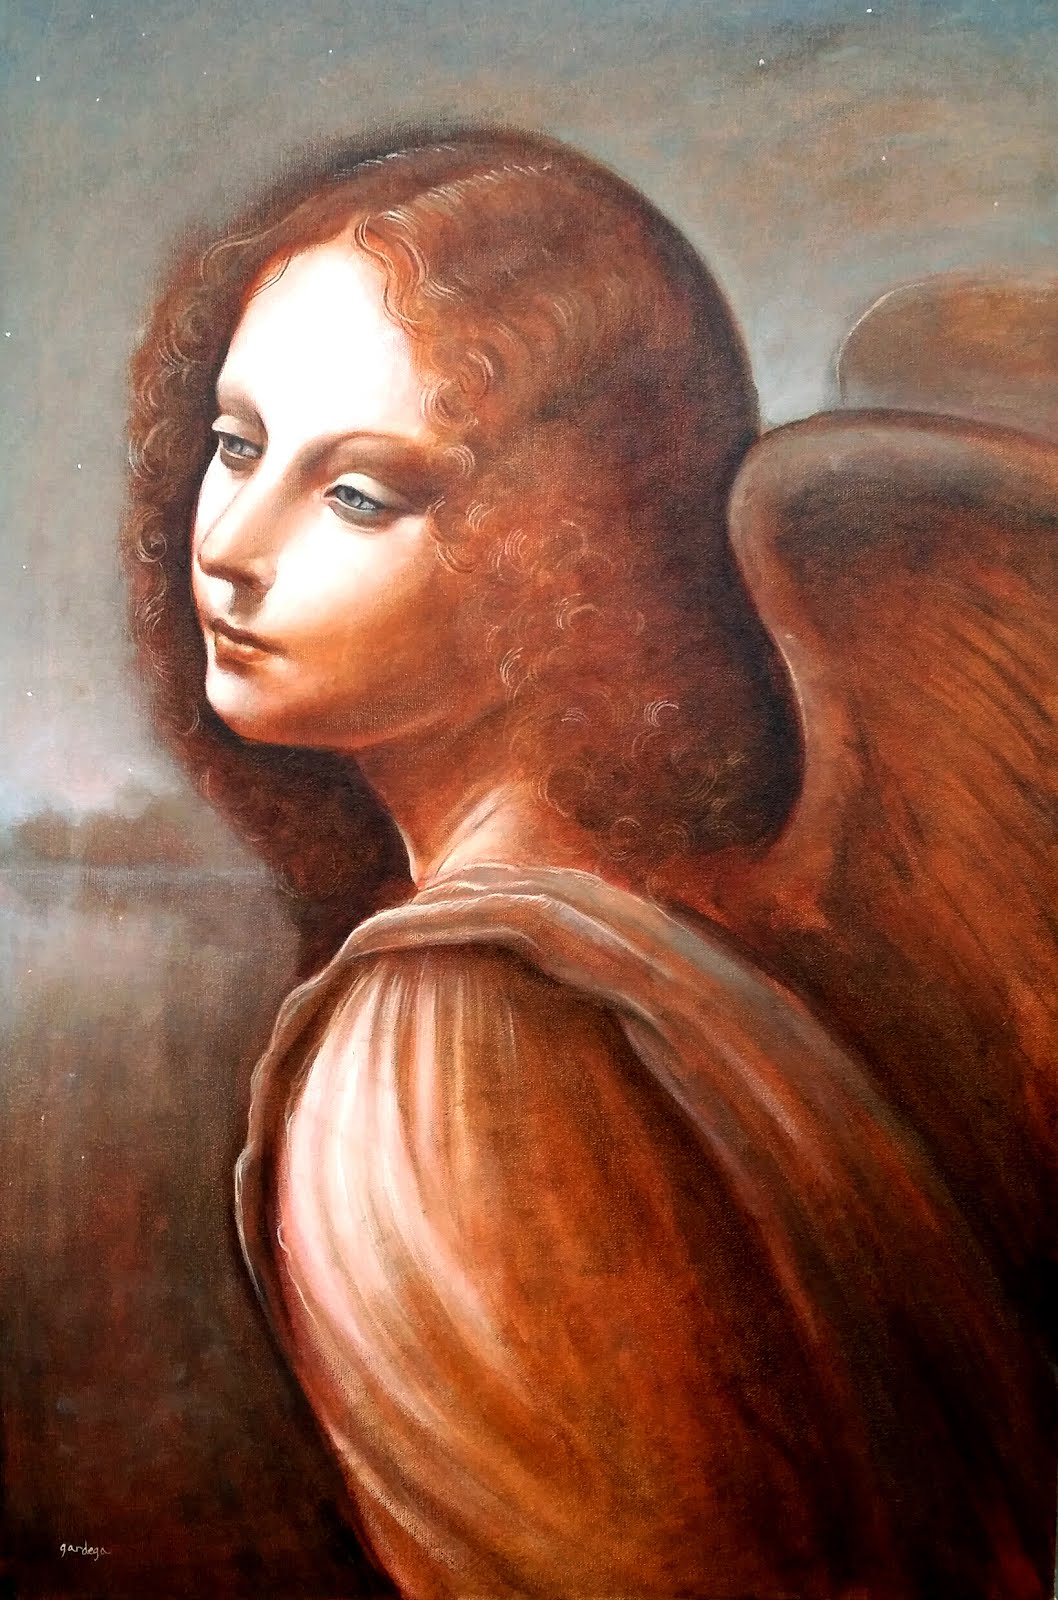 ANGEL PRINTS BY GARDEGA